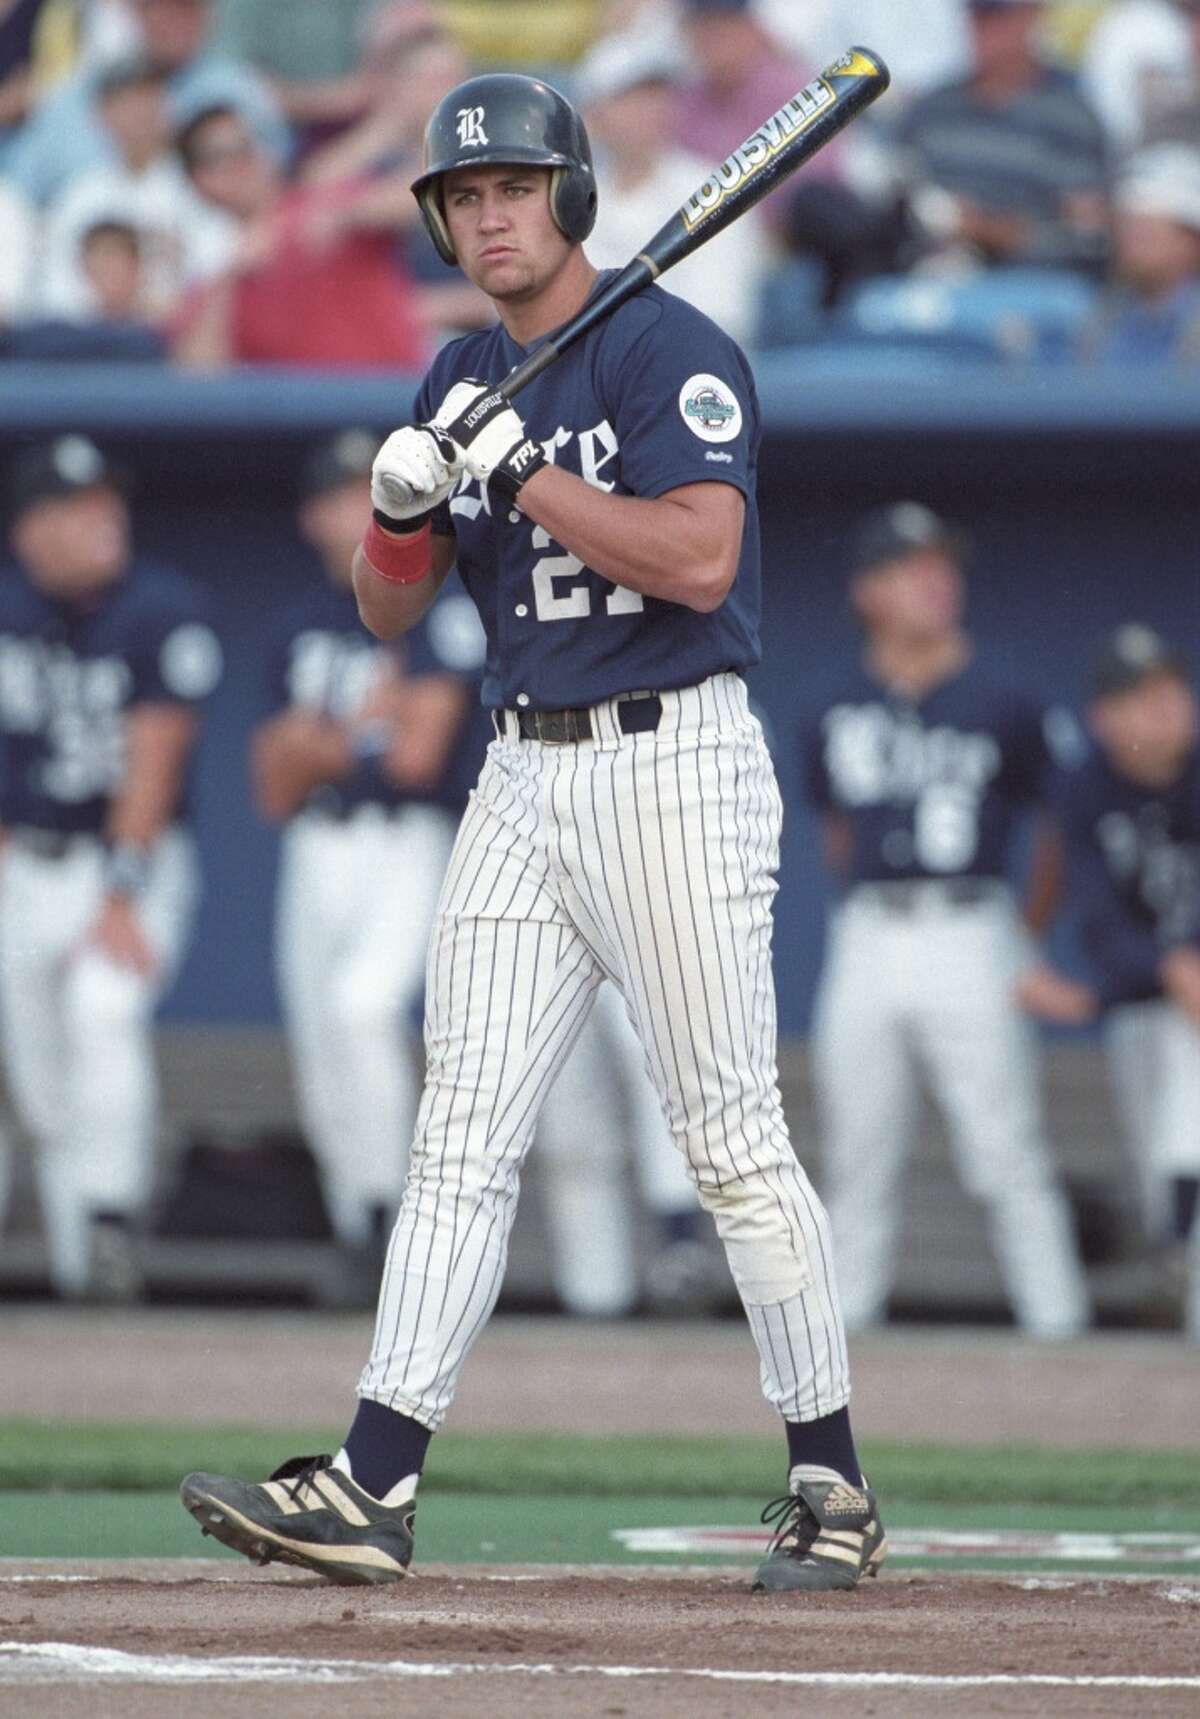 College During his college days at Rice, Berkman was named the 1997 National College Player of the Year and helped lead the Owls to their first College World Series appearance in 1997.